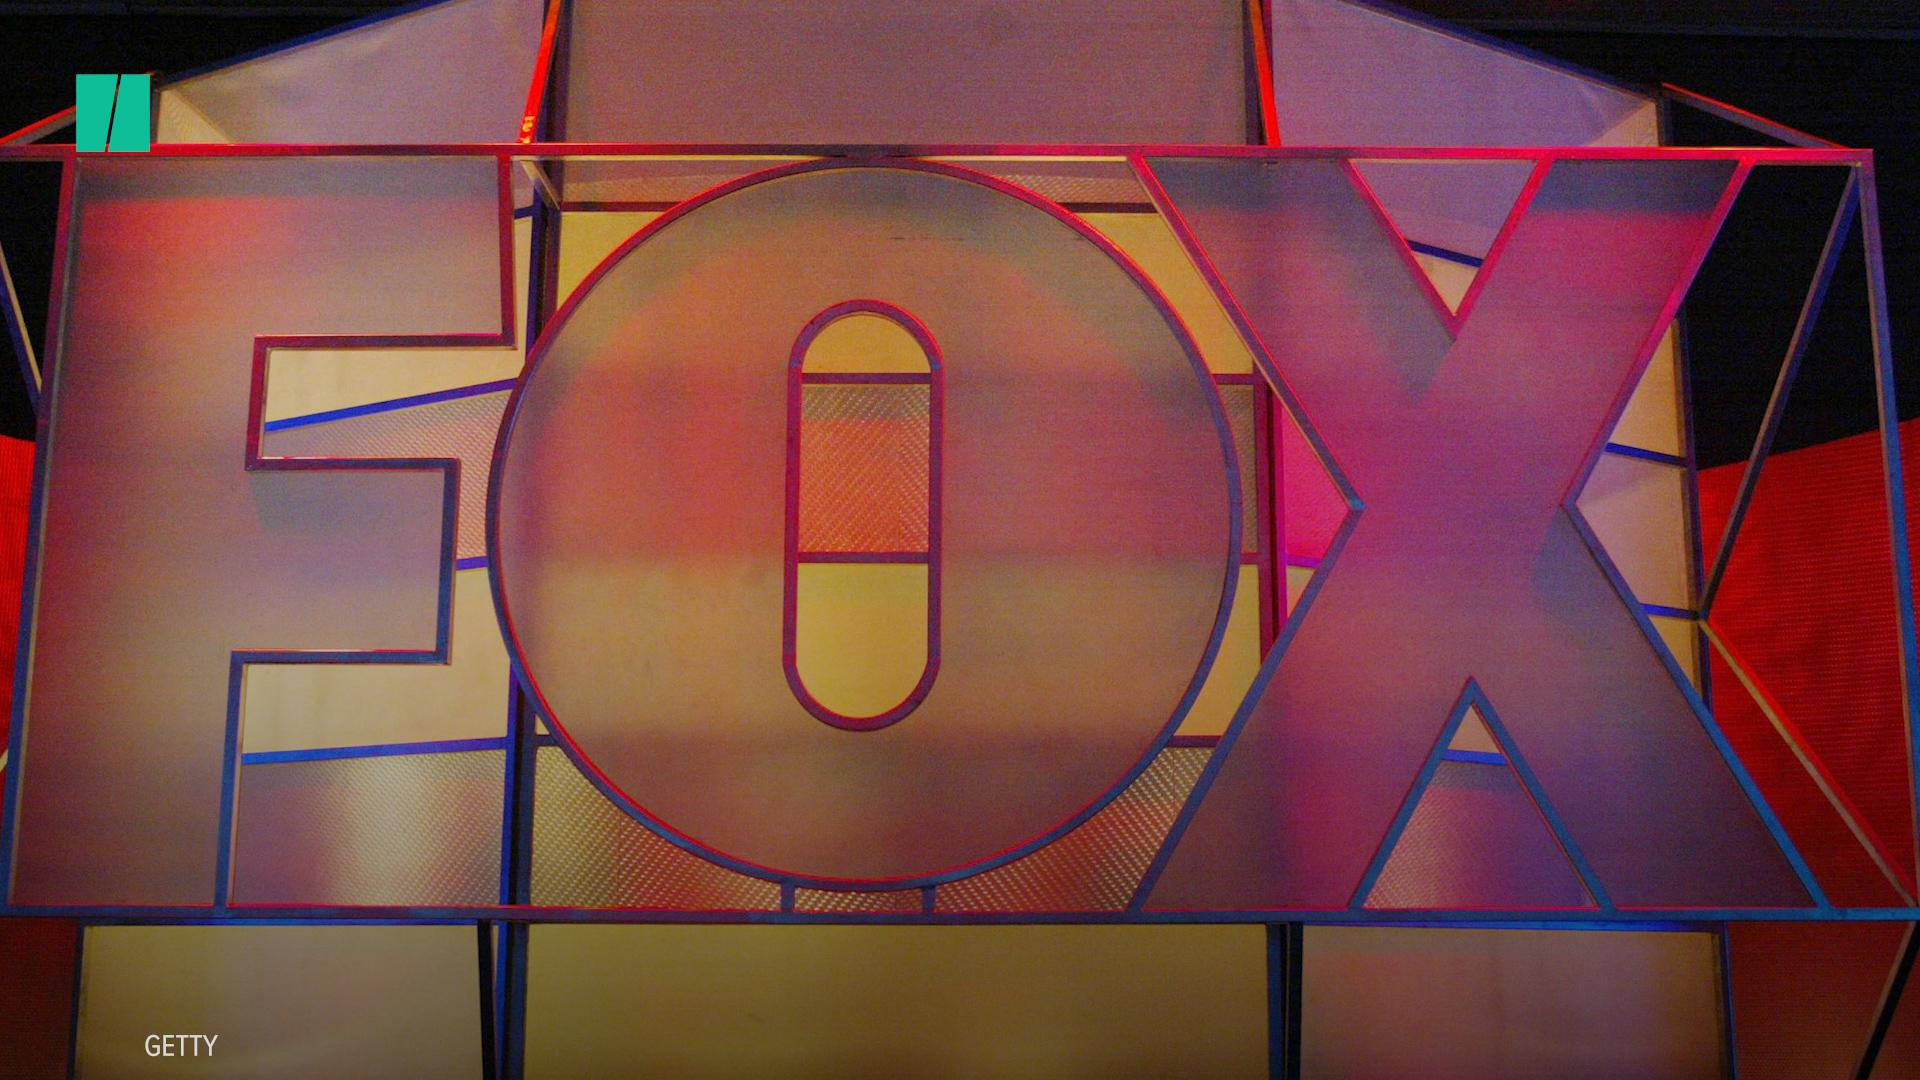 Major Hispanic Journalist Group Rejects Fox News As Conference Sponsor